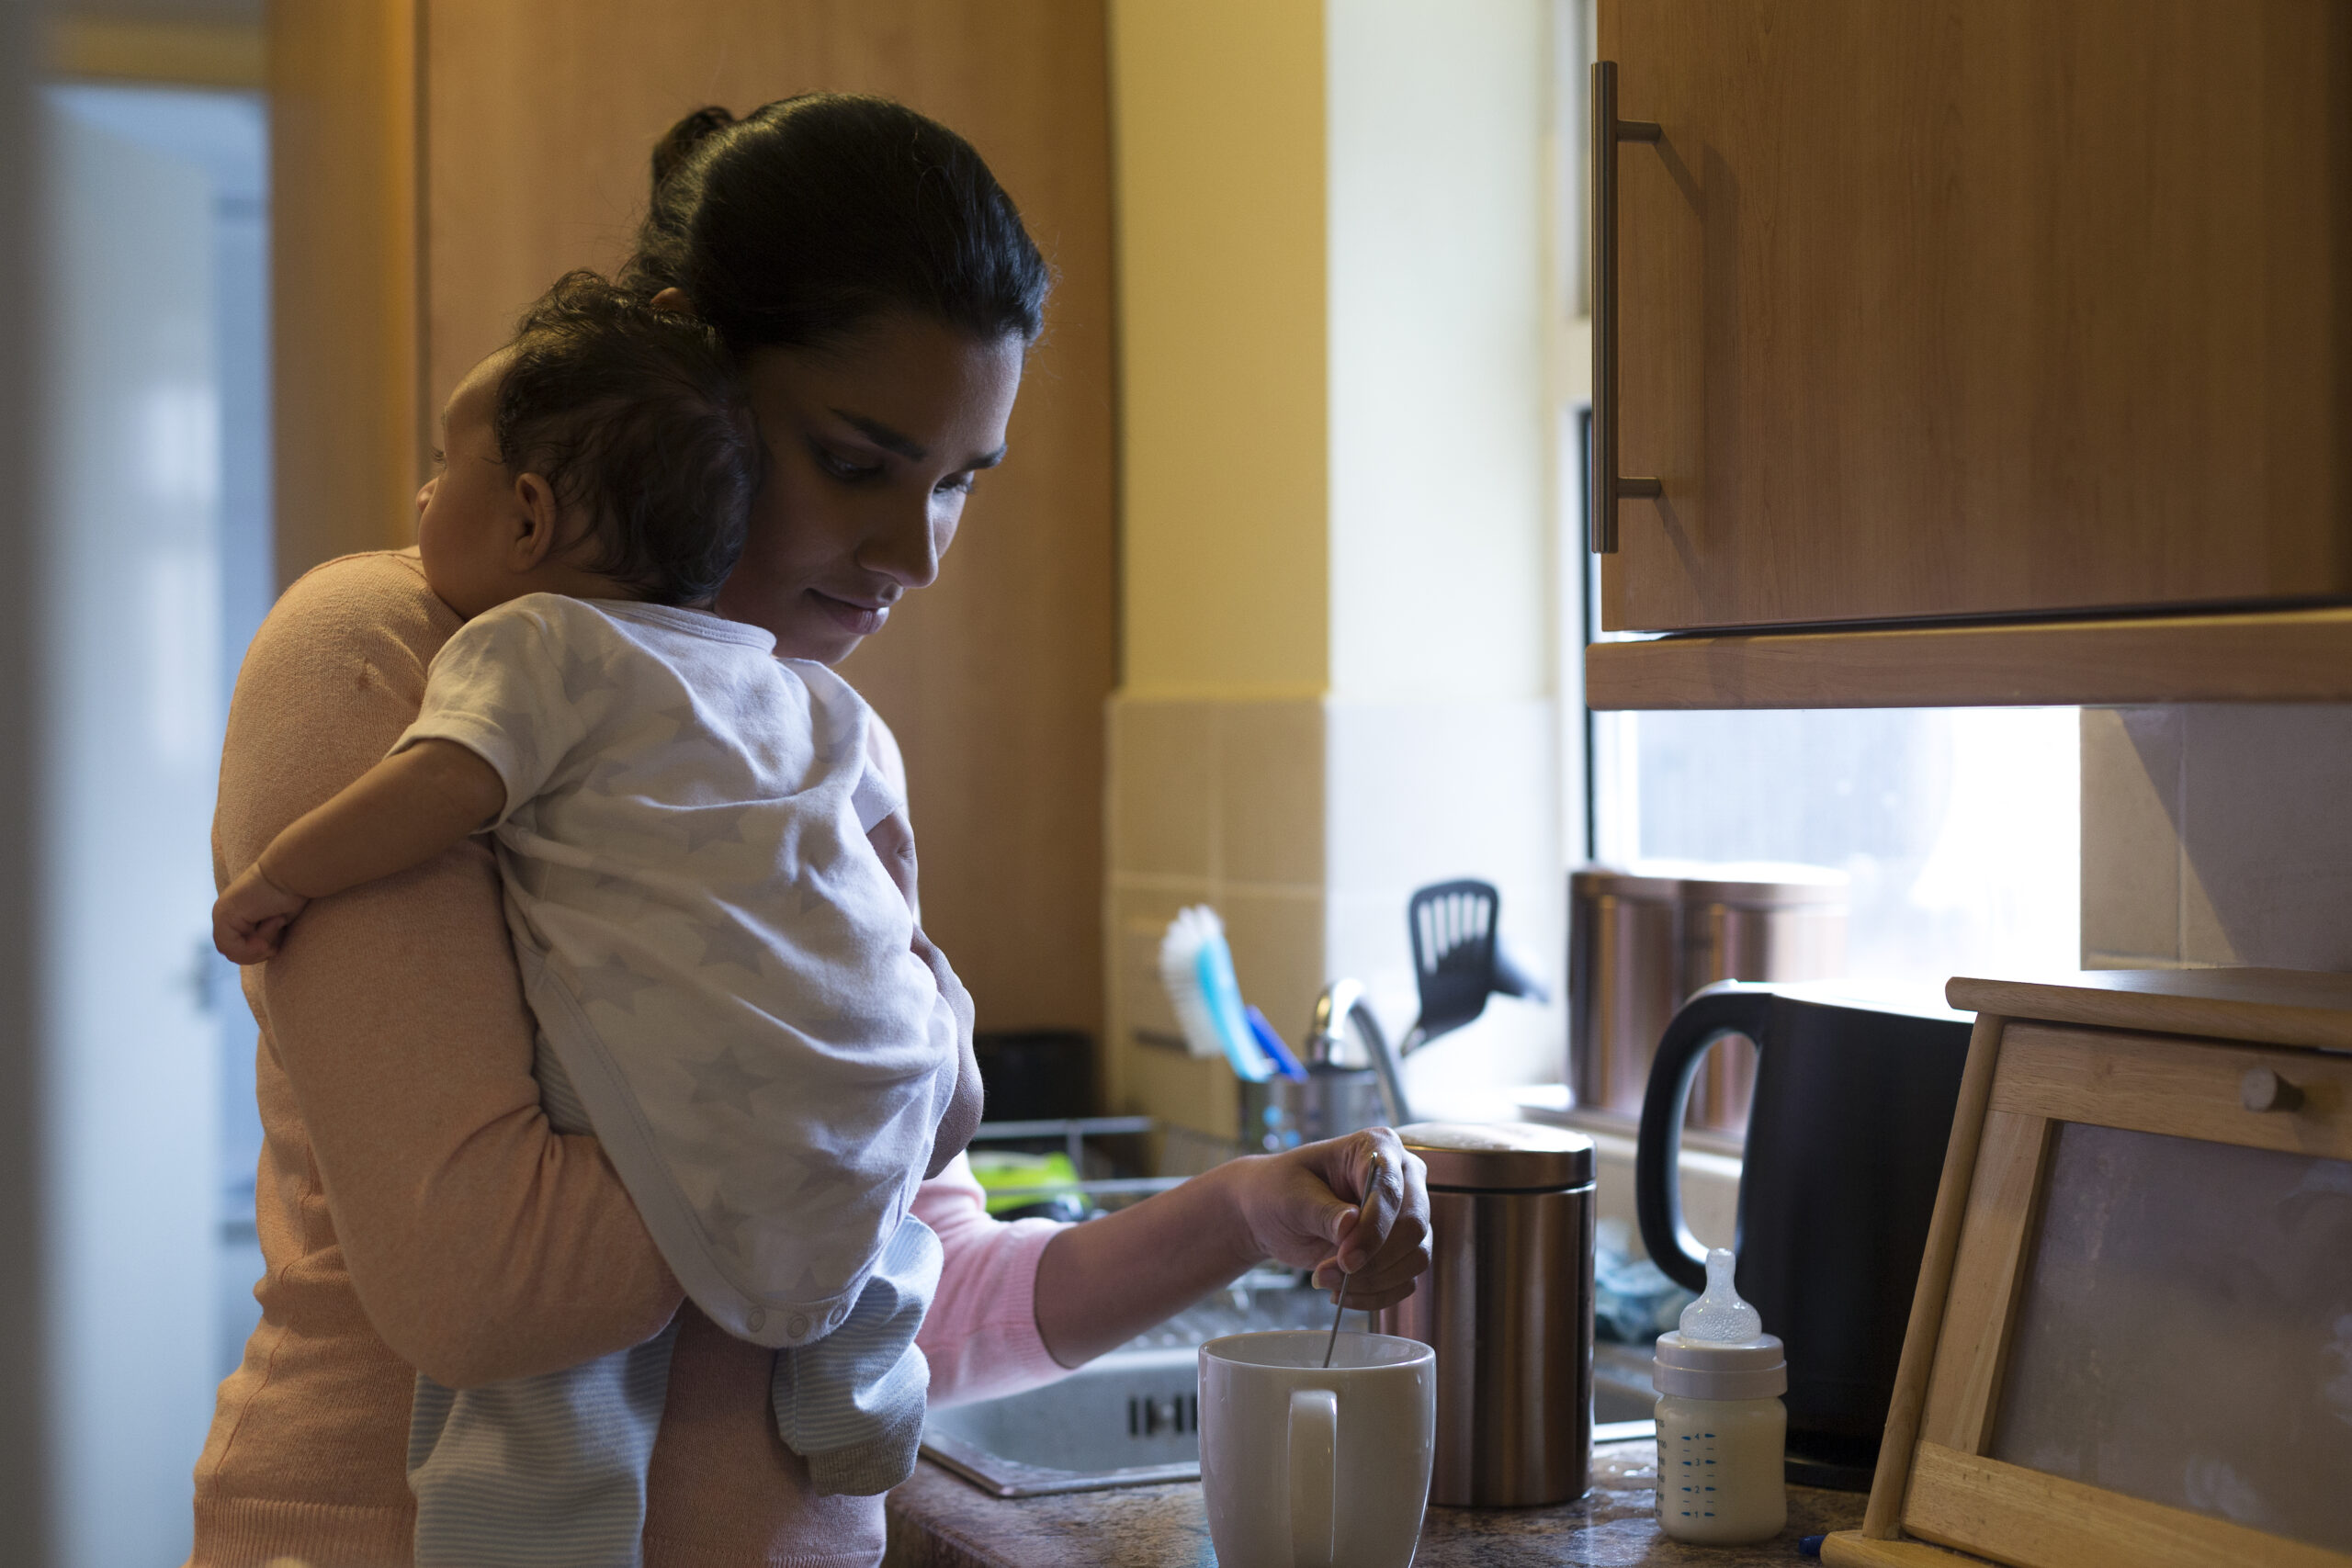 Mom holding infant making tea in the kitchen